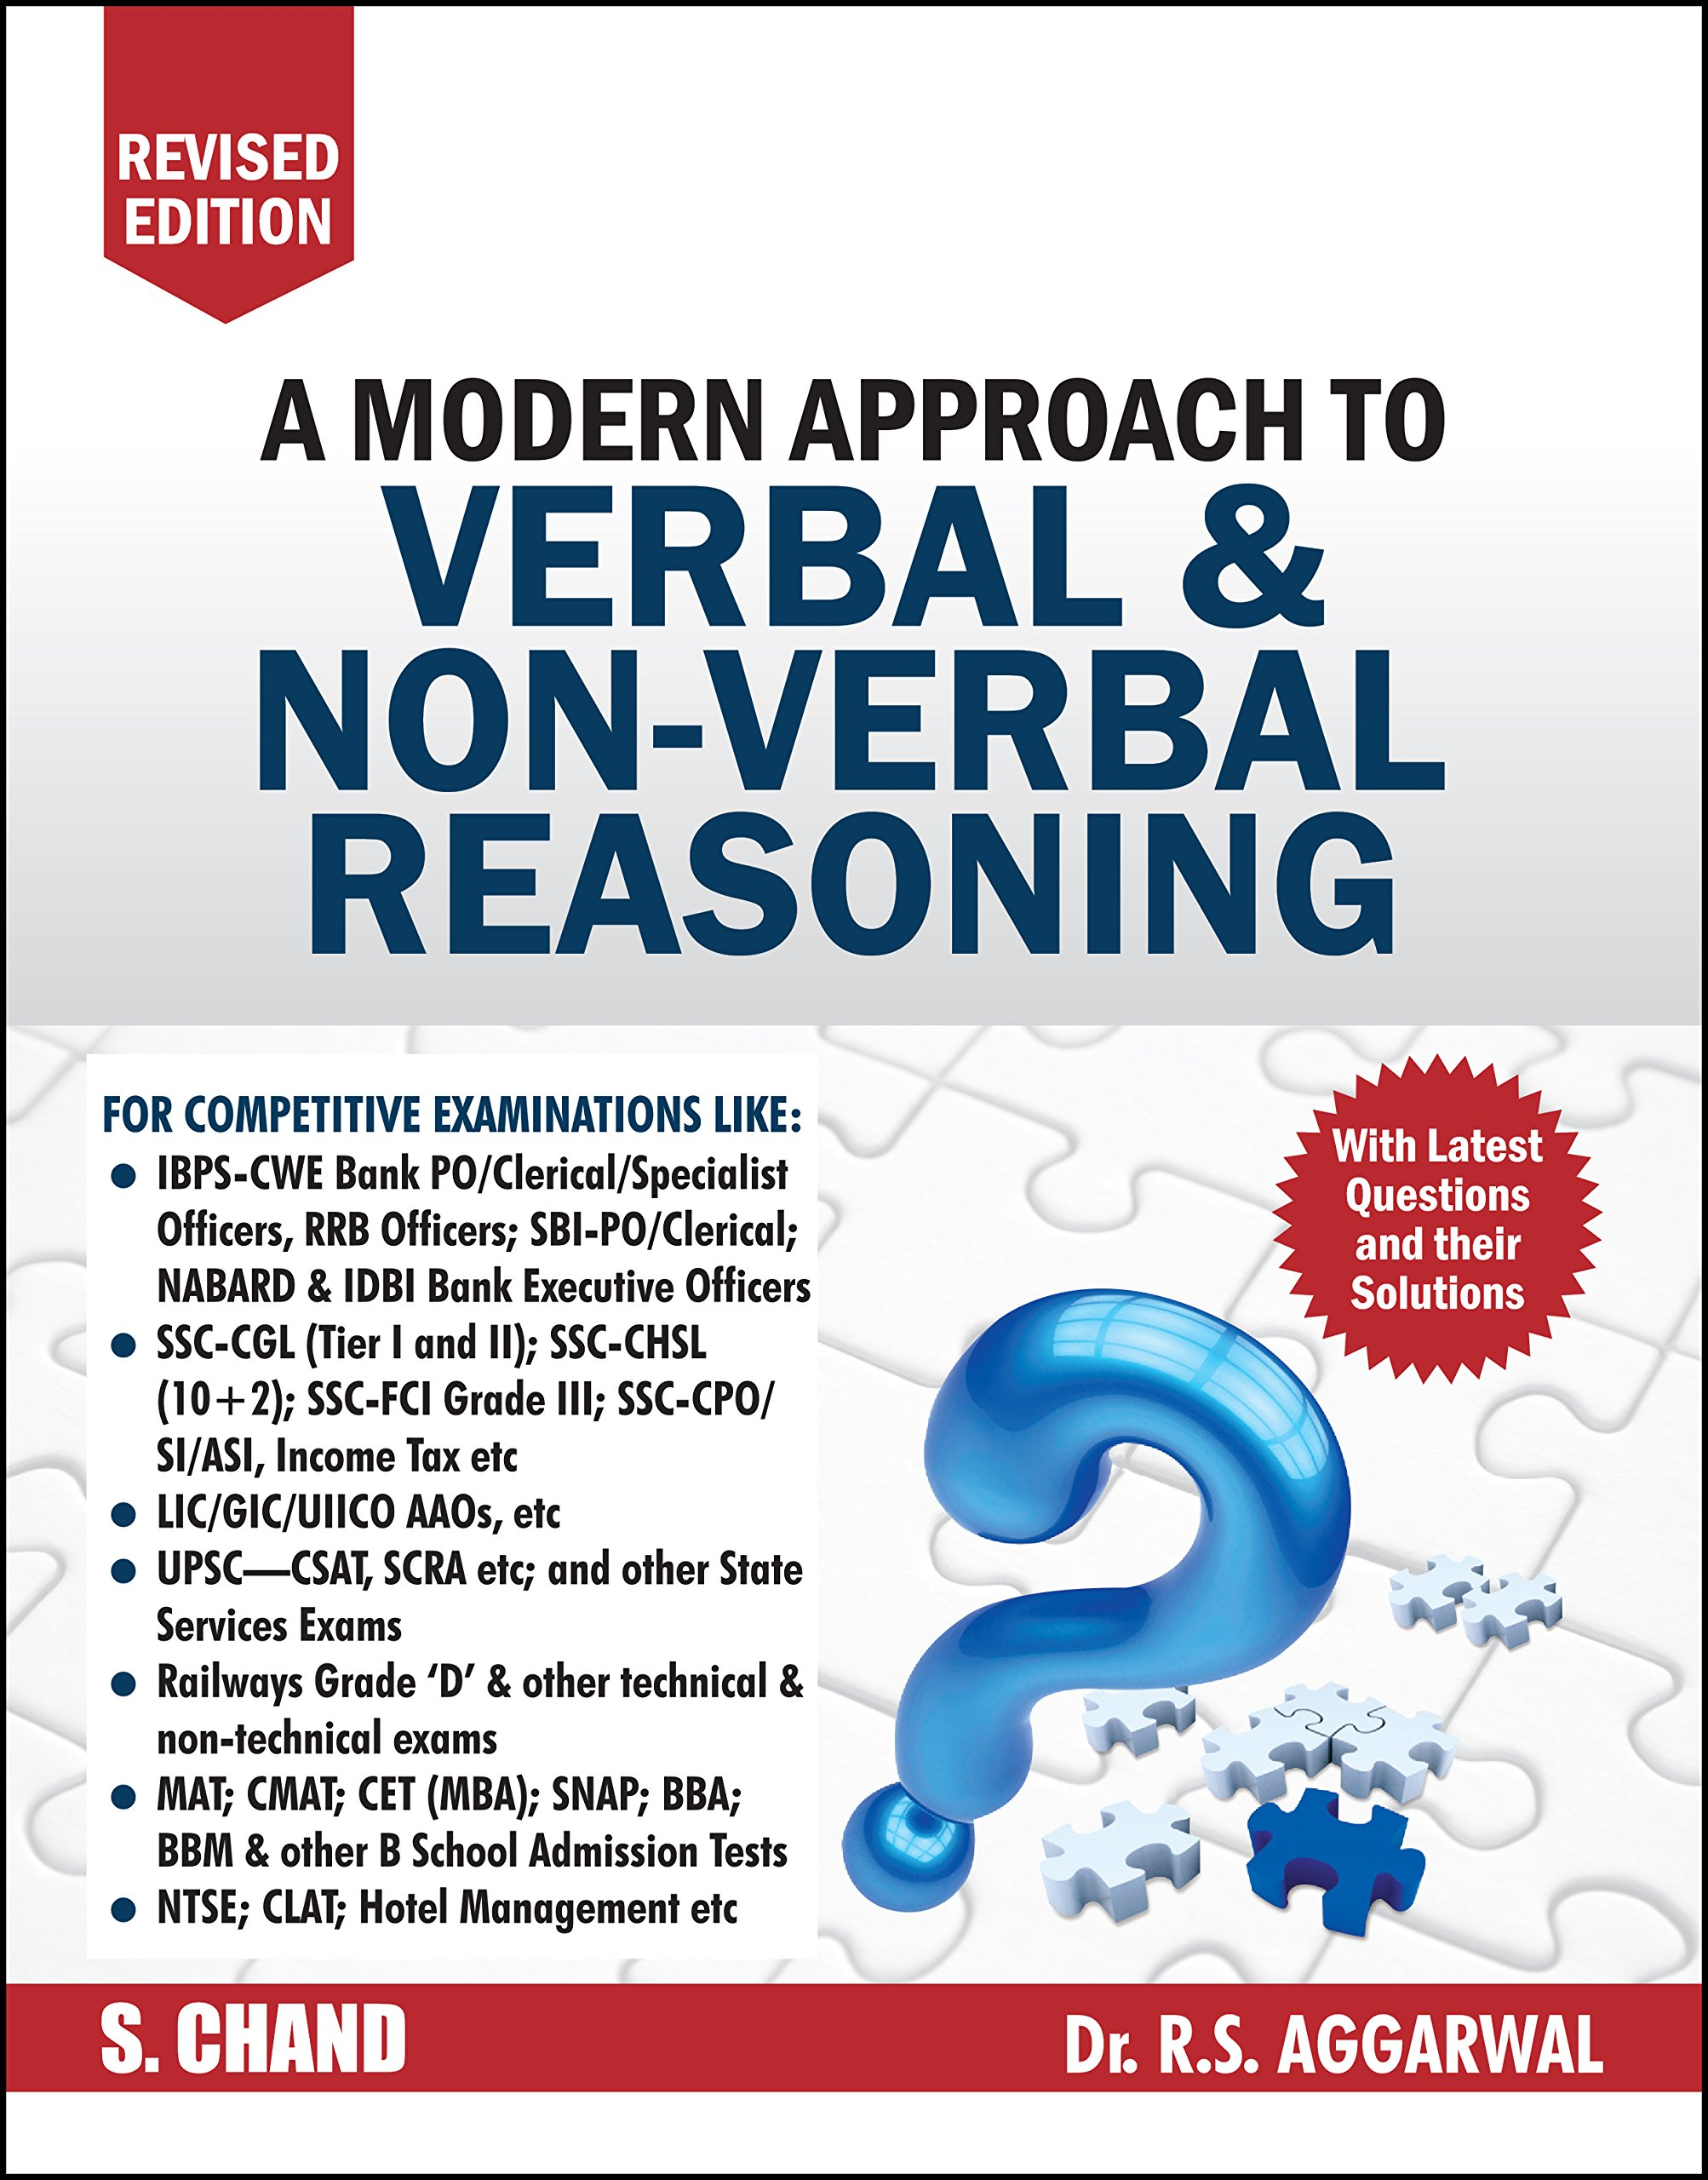 A Modern Approach to Verbal & Non-Verbal Reasoning (2 Colour Edition) Paperback – 1 January 2018